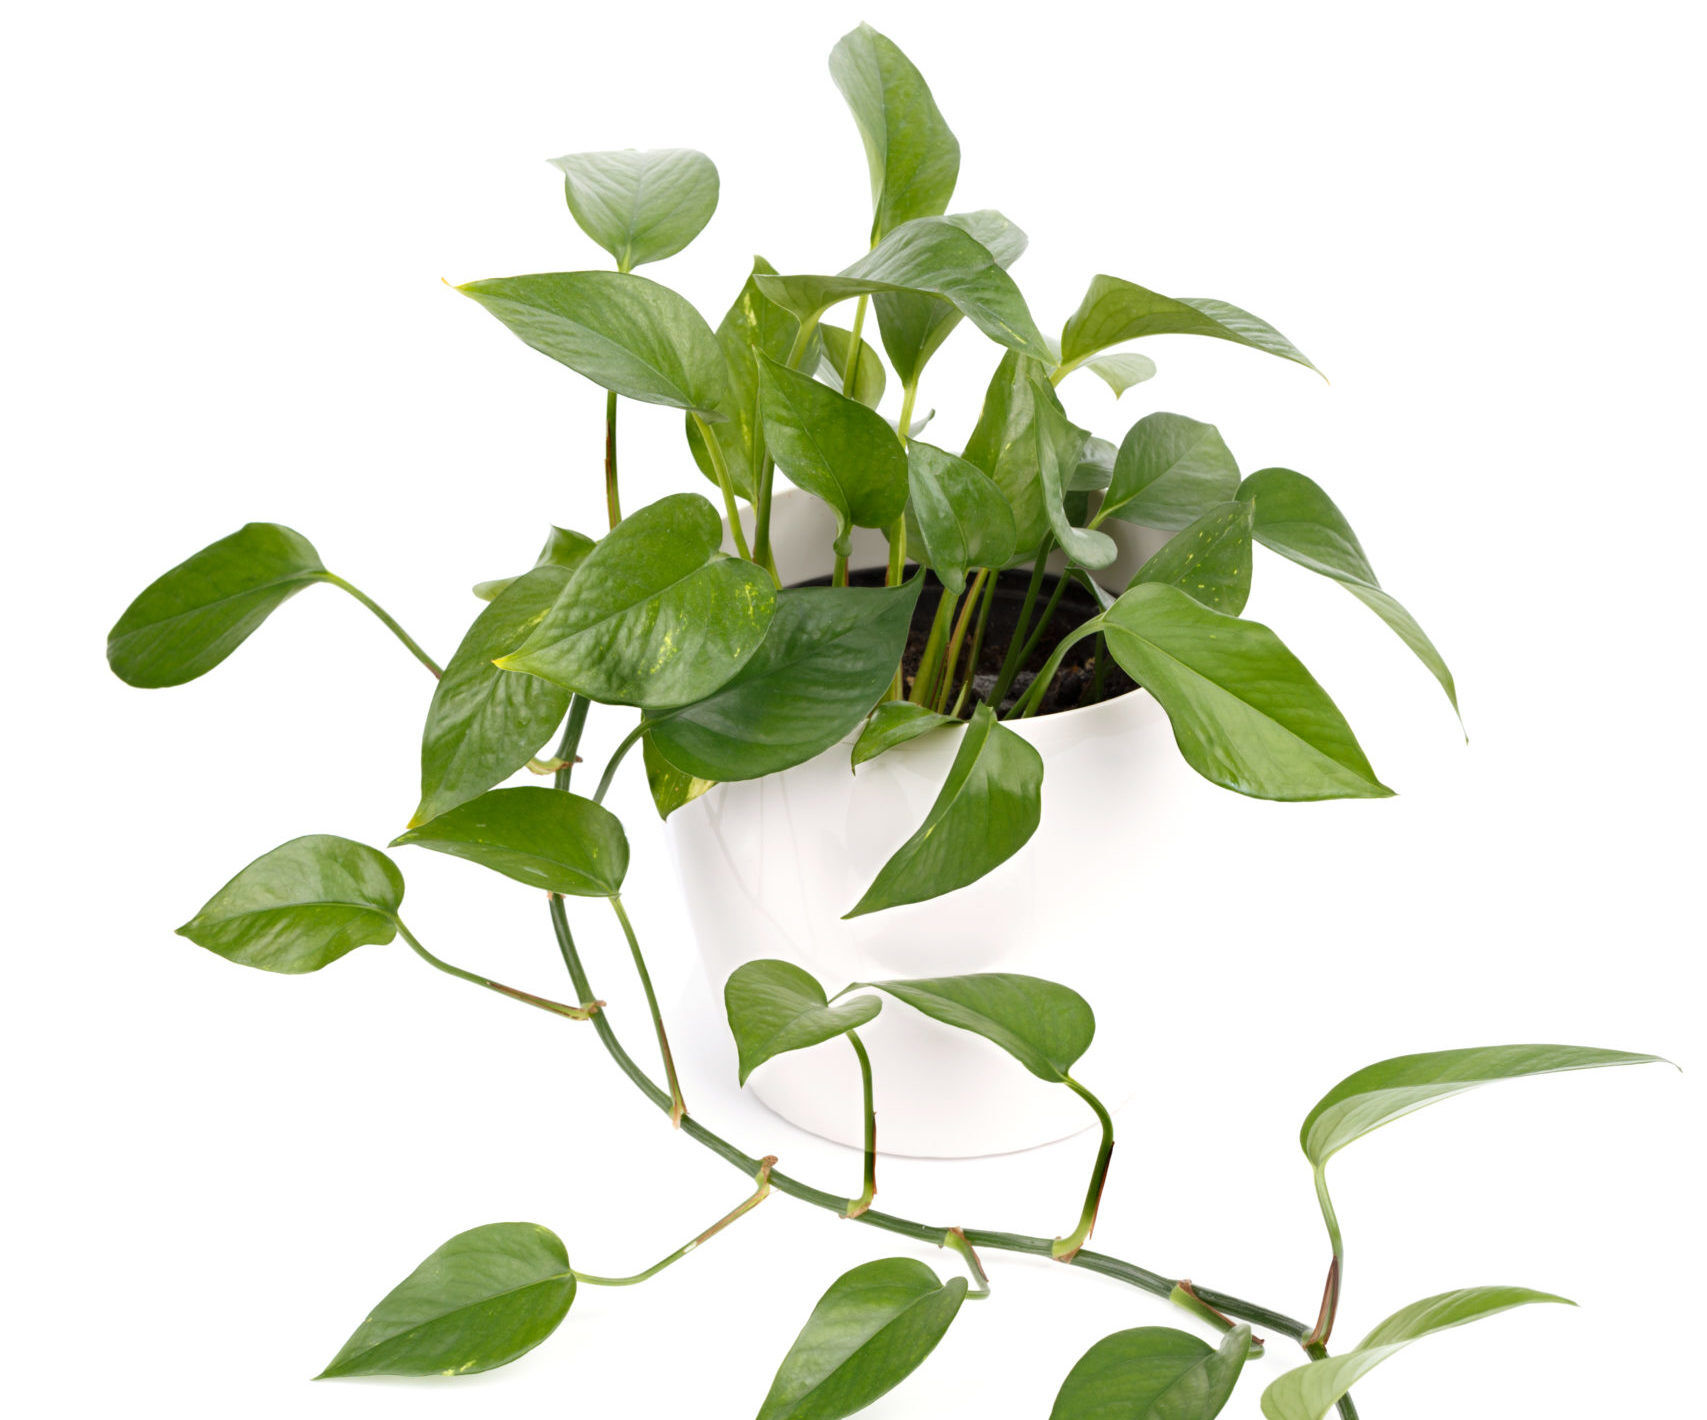 The Best Fertilizer for Pothos Plants